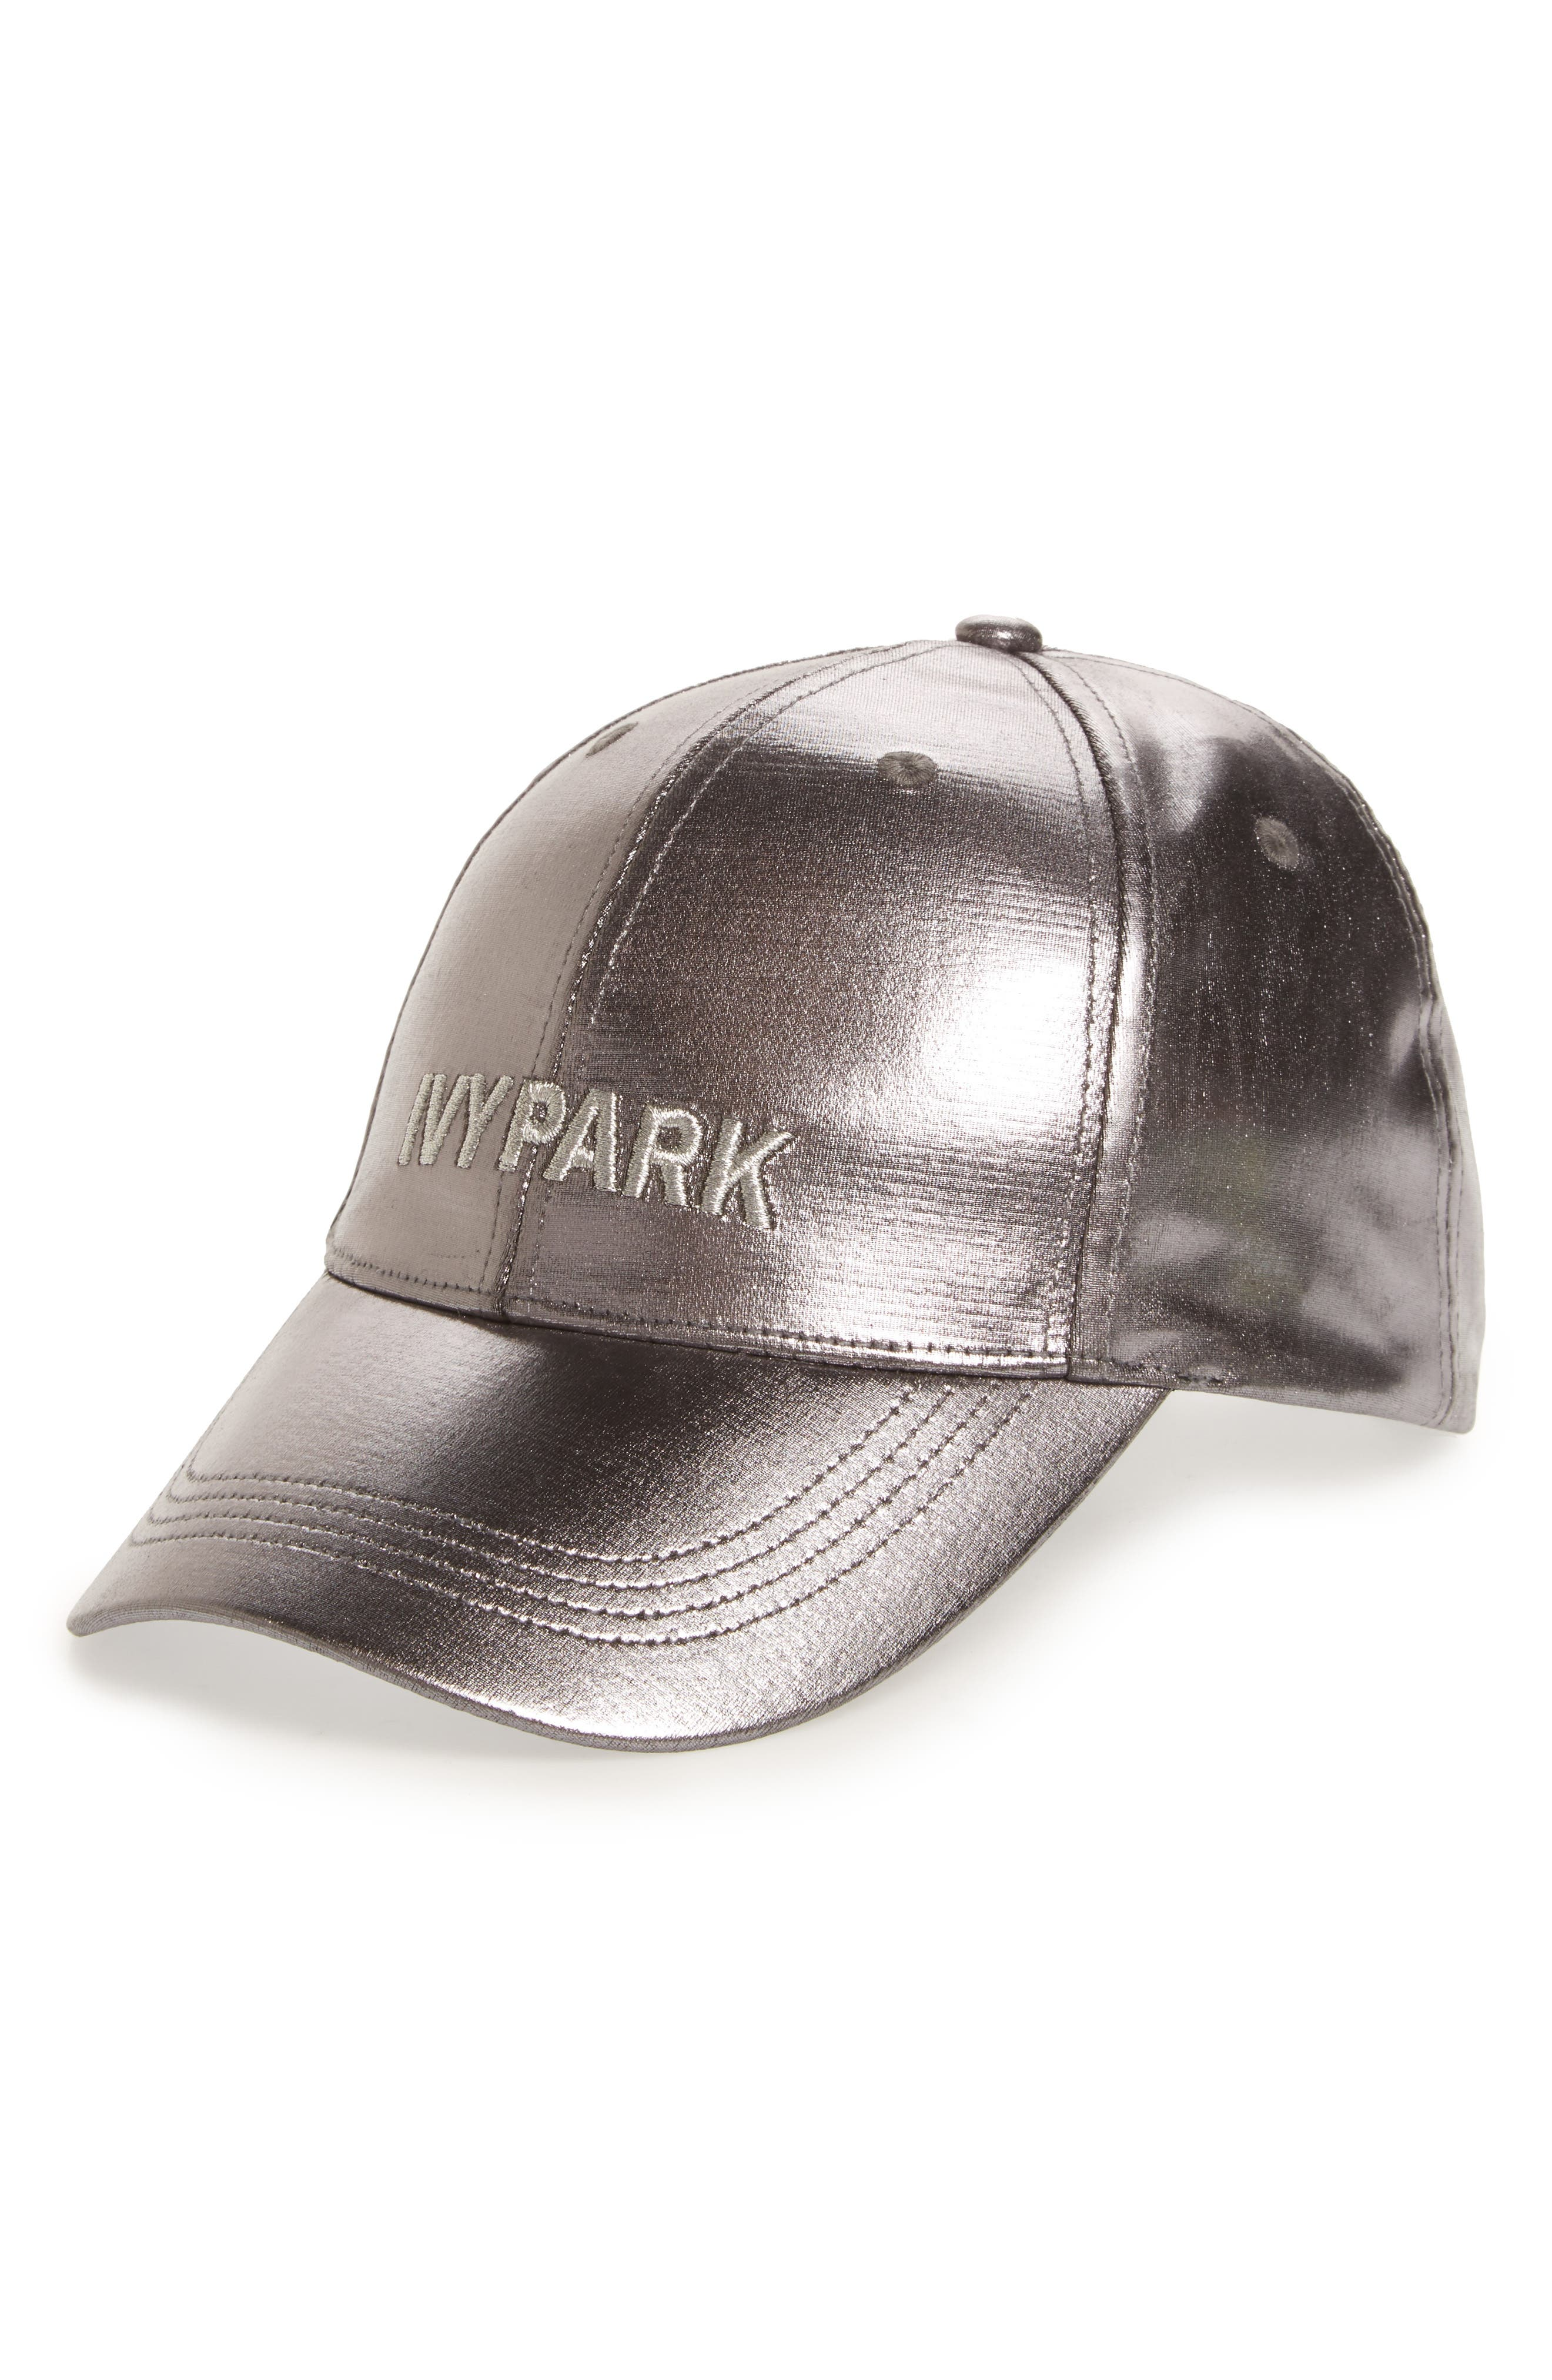 Adjustable Metallic Baseball Cap,                         Main,                         color, Metallic